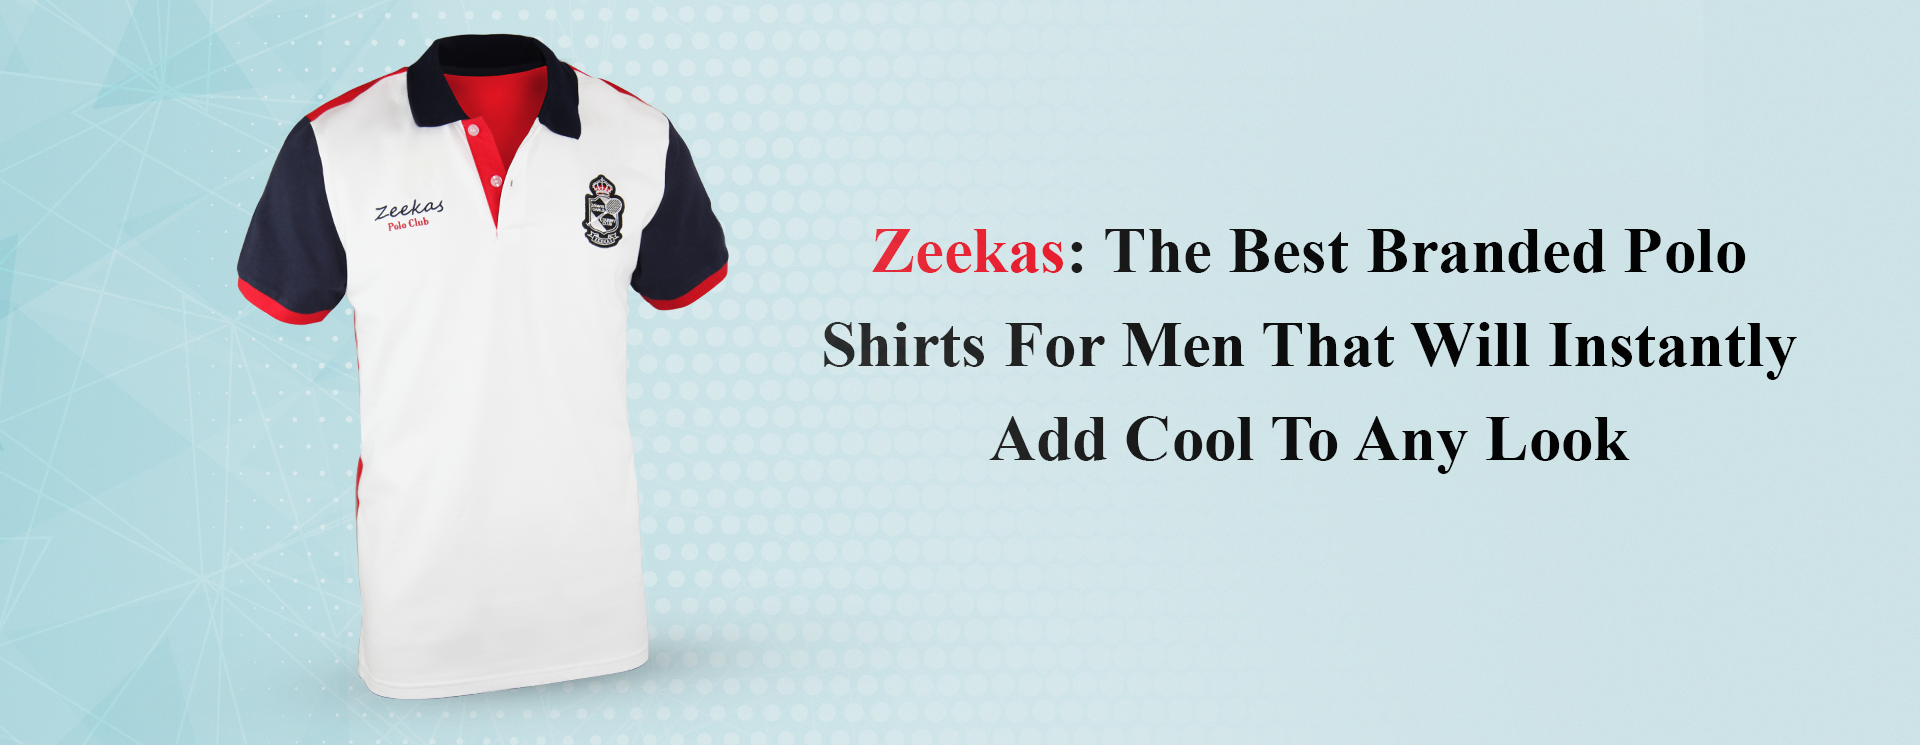 Zeekas: The Best Branded Polo Shirts For Men That Will Instantly Add Cool To Any Look